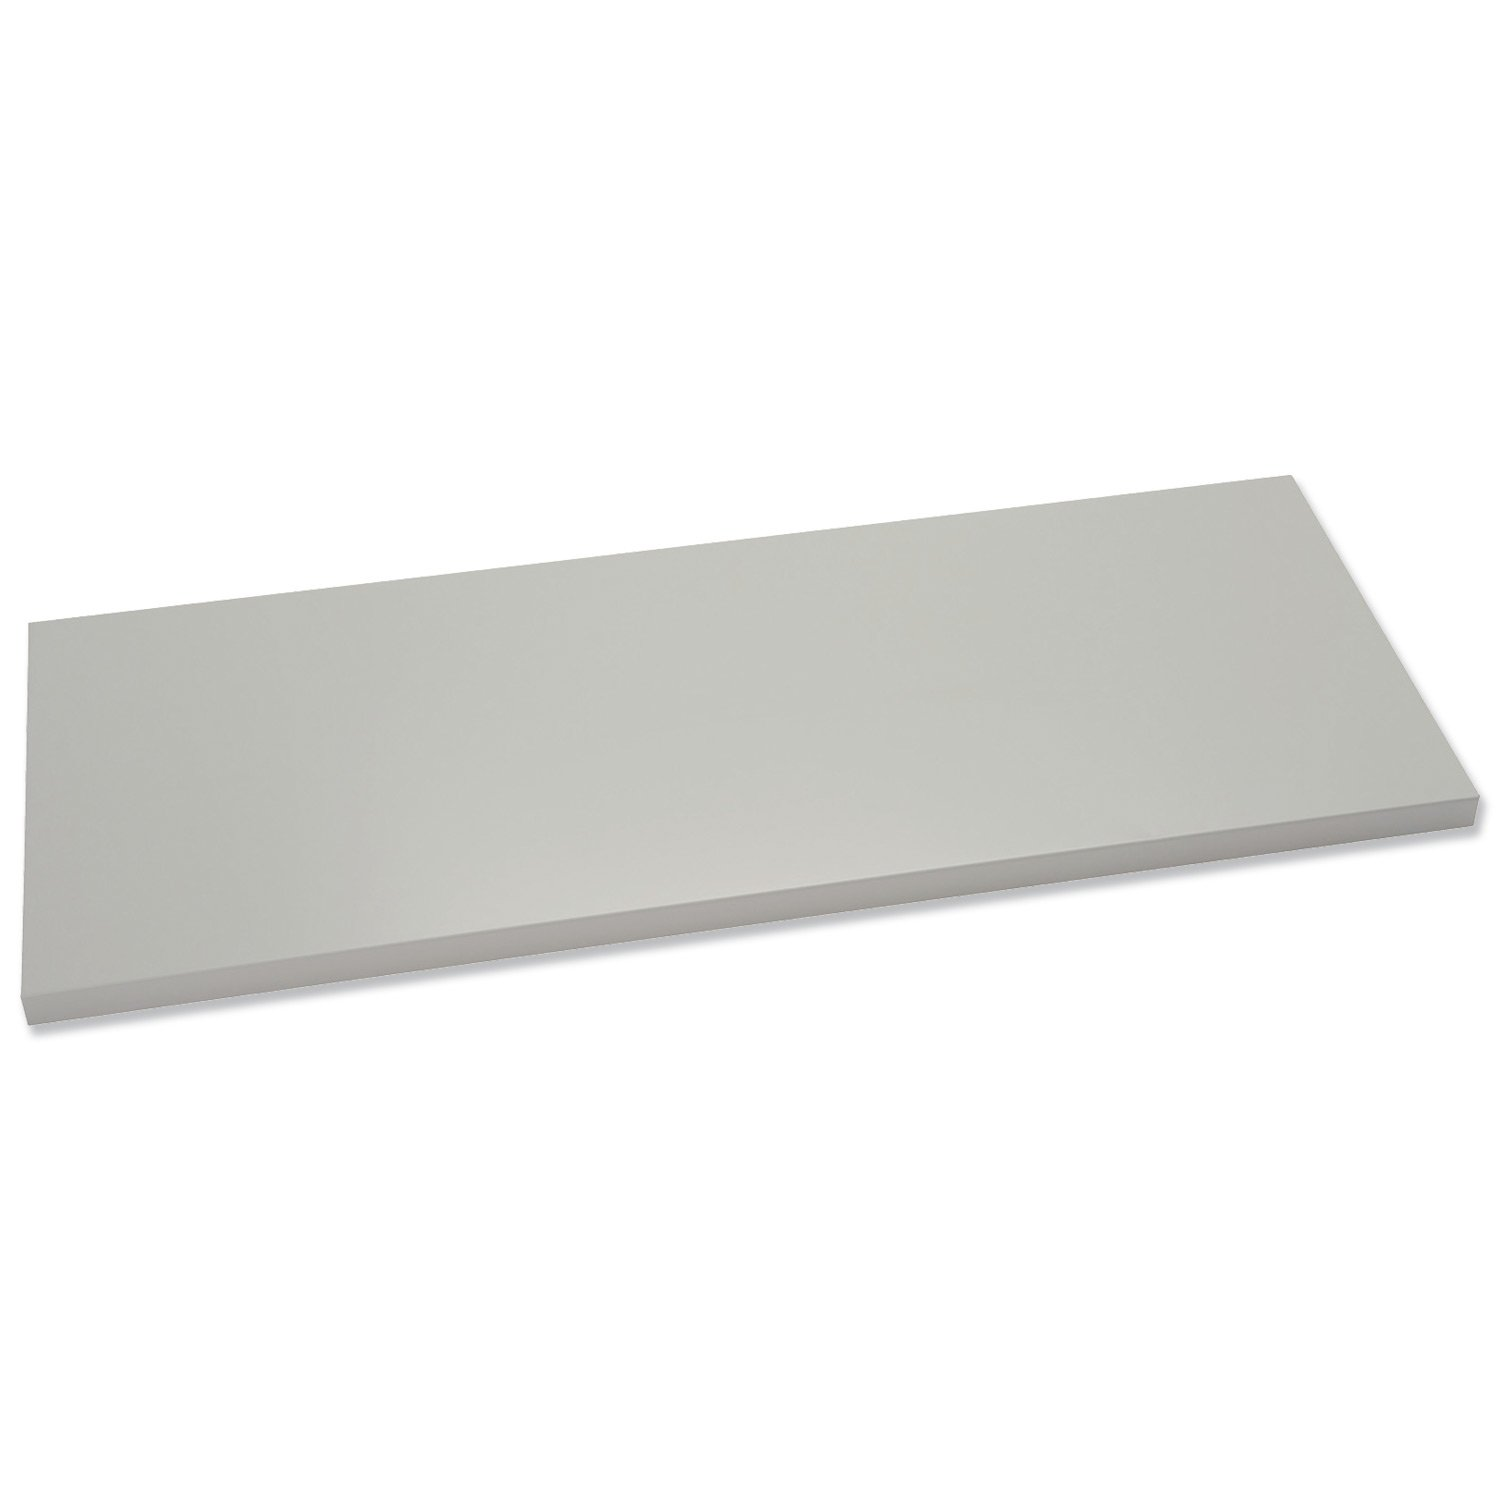 Bisley Standard Shelf for Cupboard Grey Ref BBS 311588